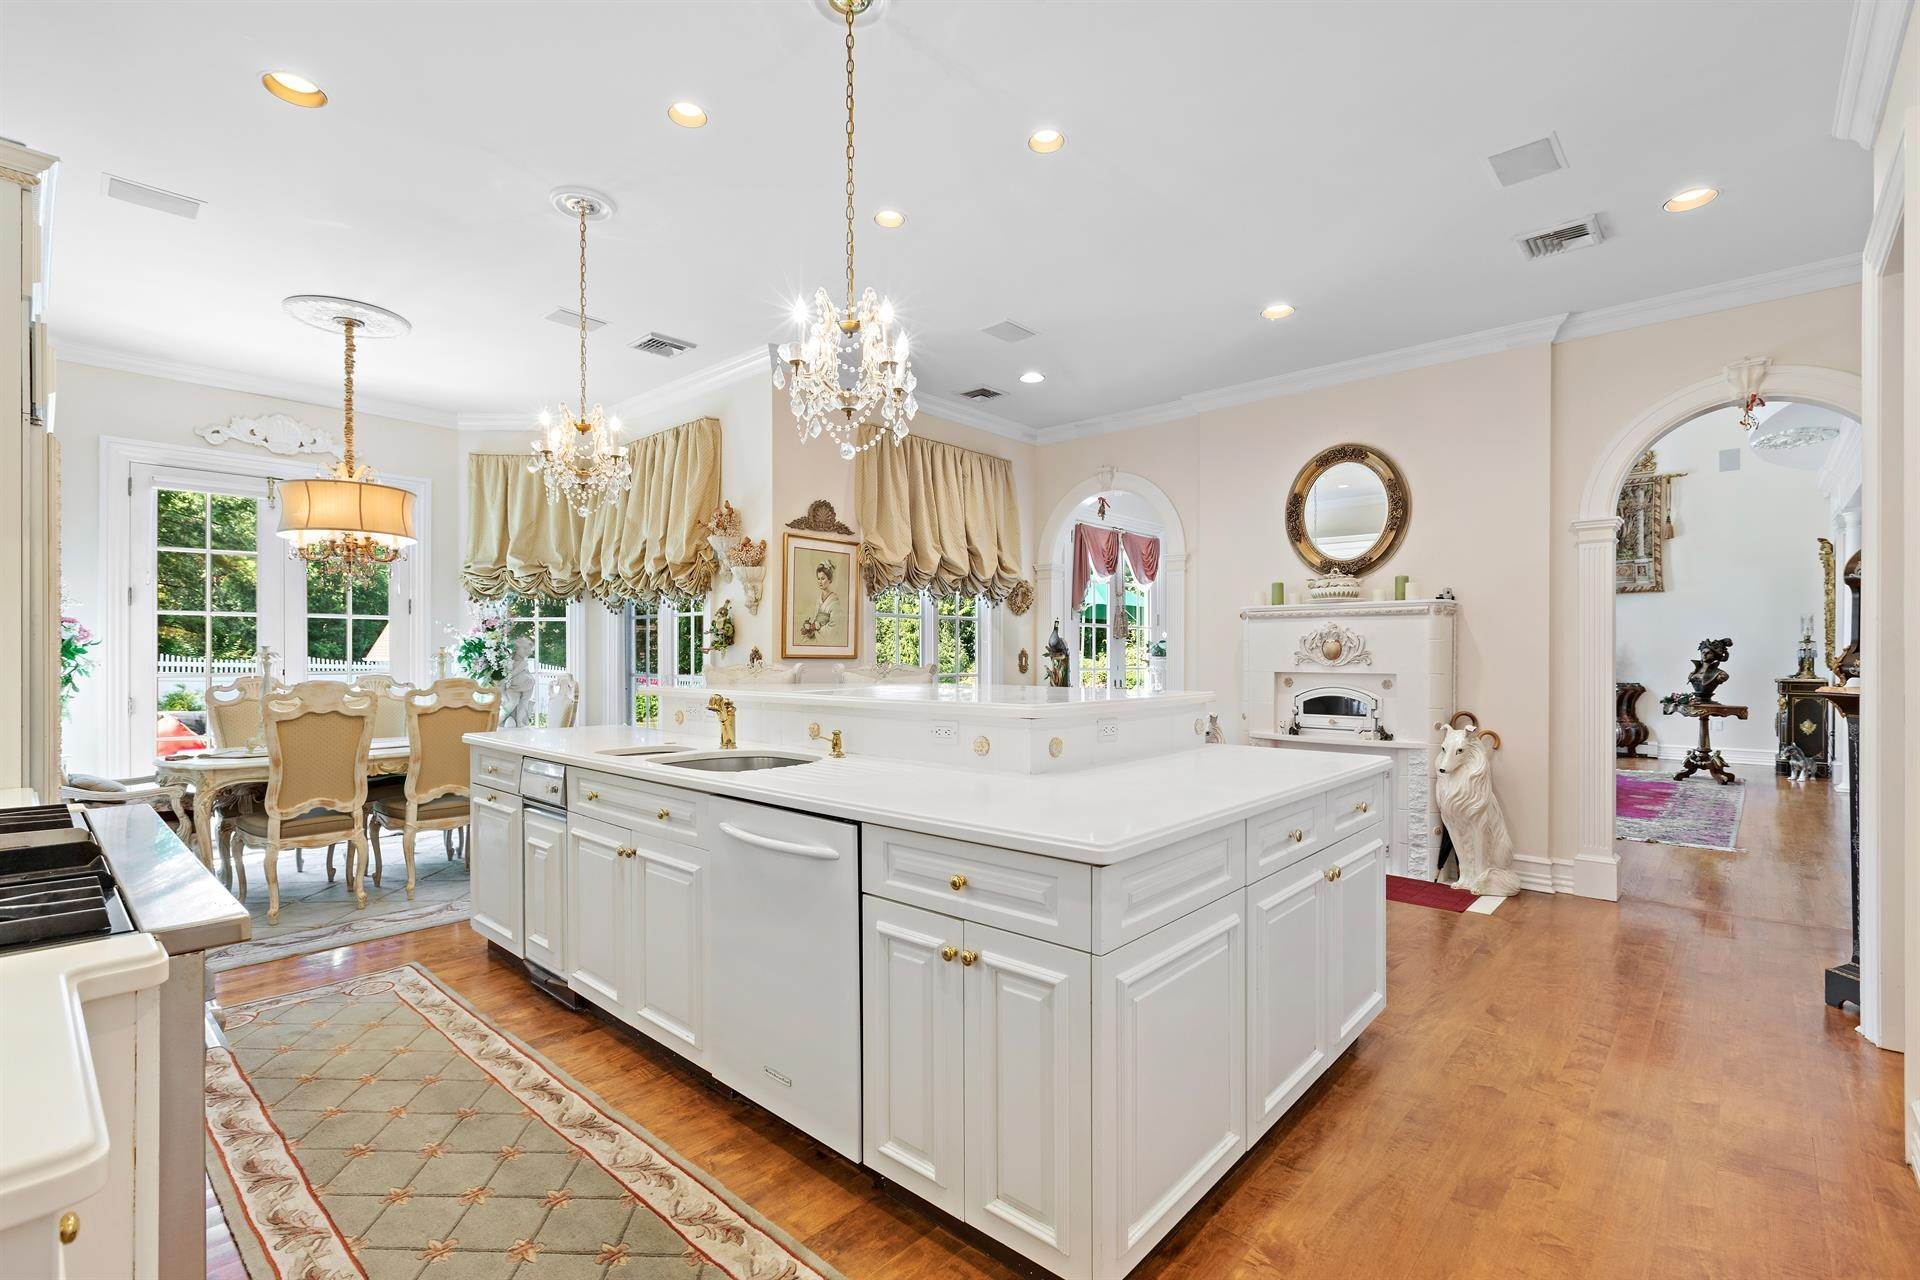 31. Residential for Sale at 15 Hunter Ridge Woodcliff Lake, New Jersey, 07677 United States